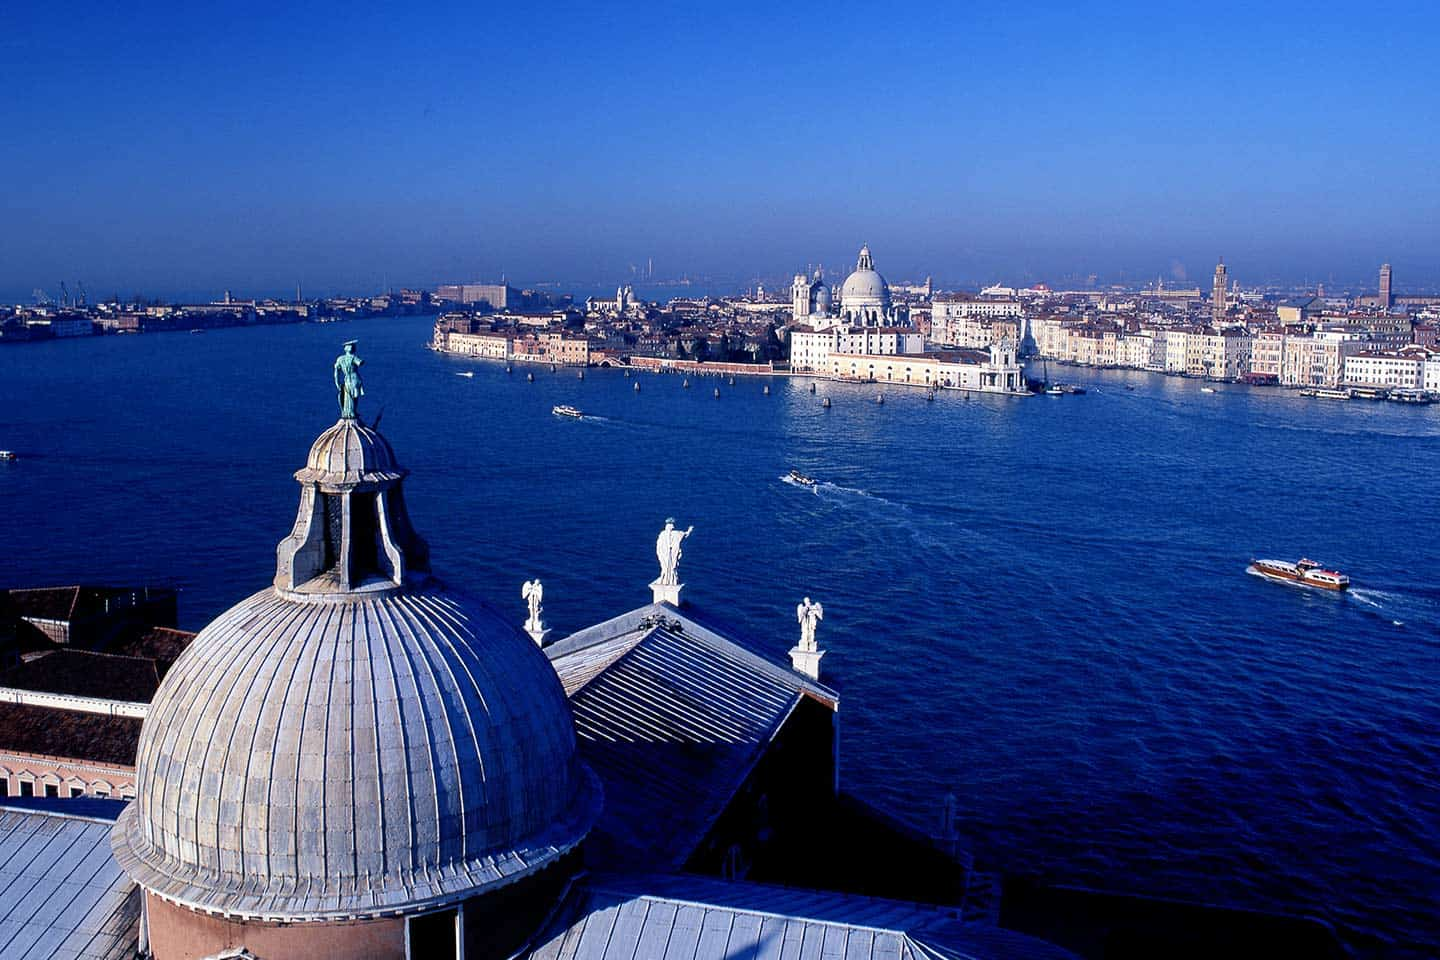 Best things to do in Venice Italy Image of view from San Giorgio Maggiore across lagoon